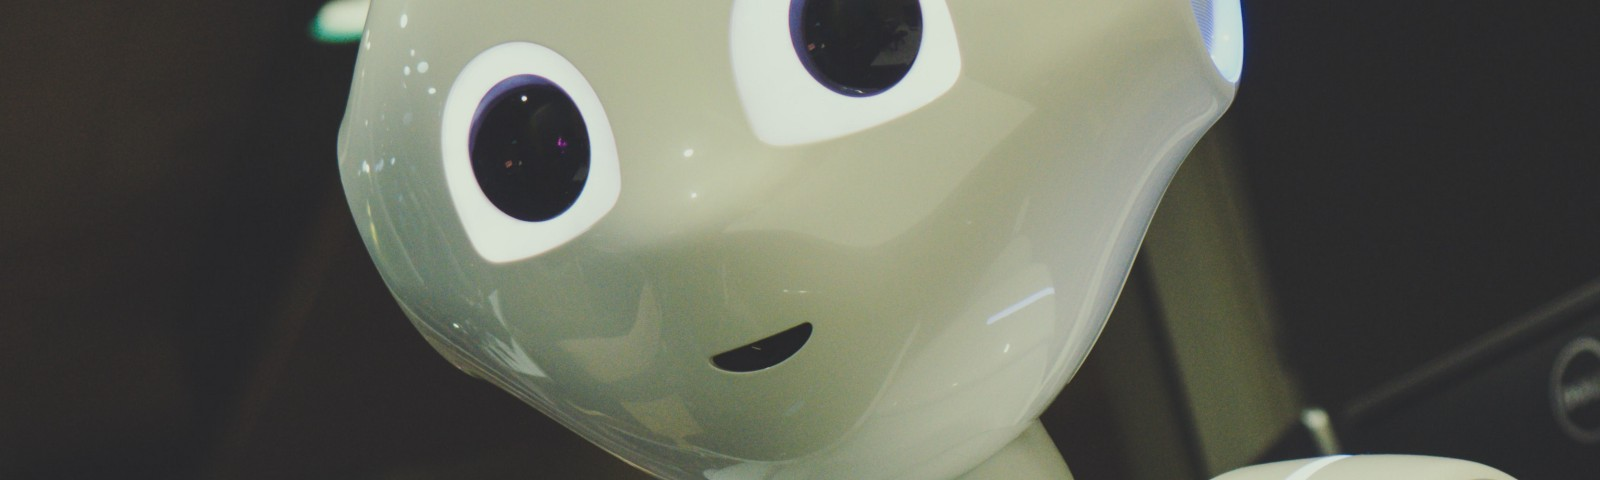 Robot with human features, smiling